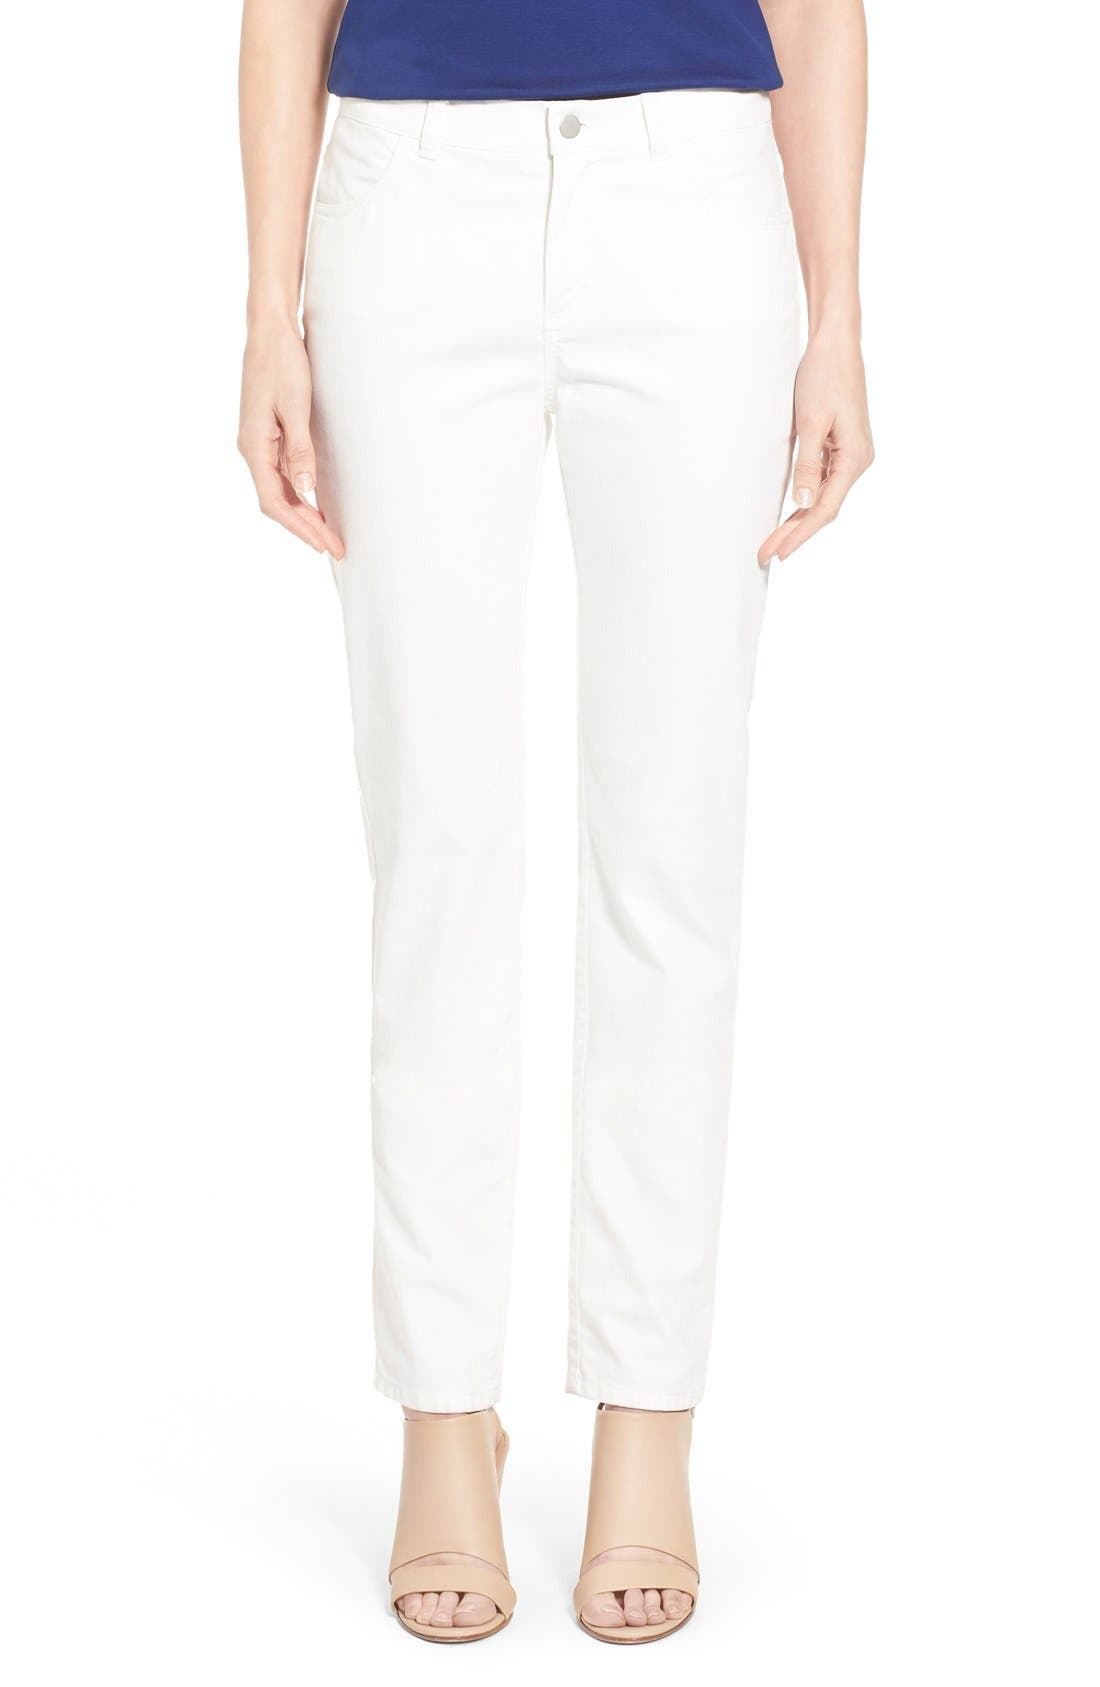 Alternate Image 1 Selected - Lafayette 148 New York Curvy Fit Jeans